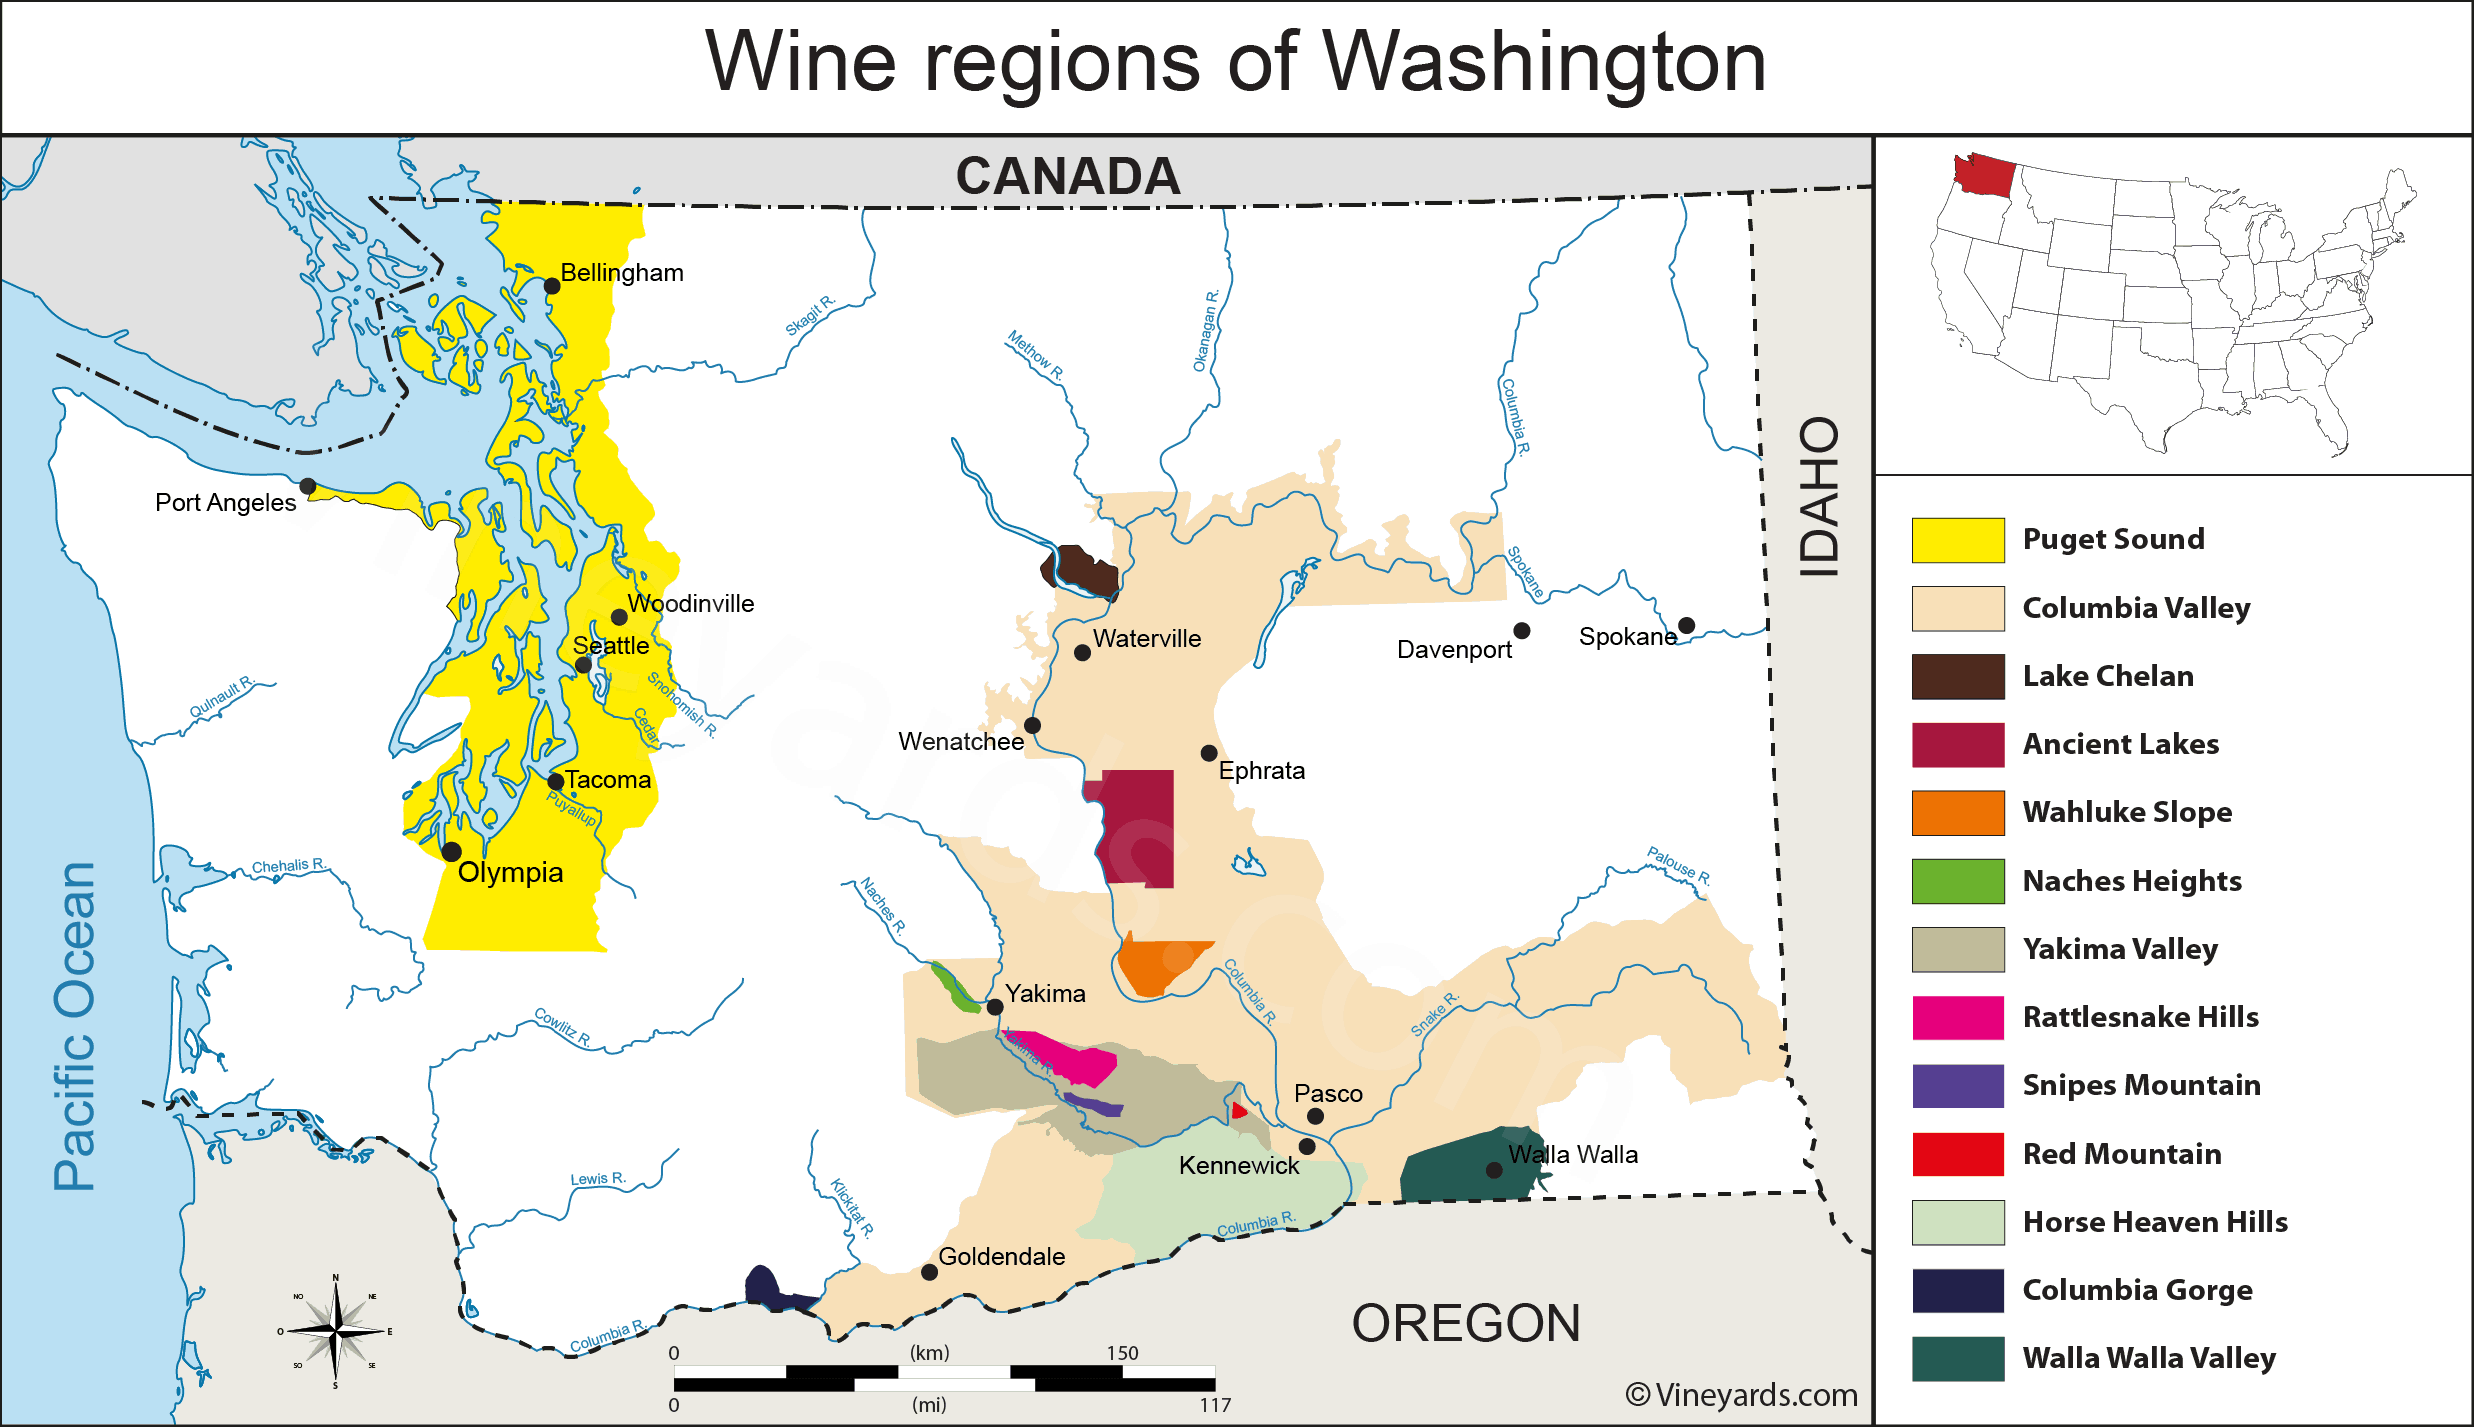 Map of the wine regions of Washington state